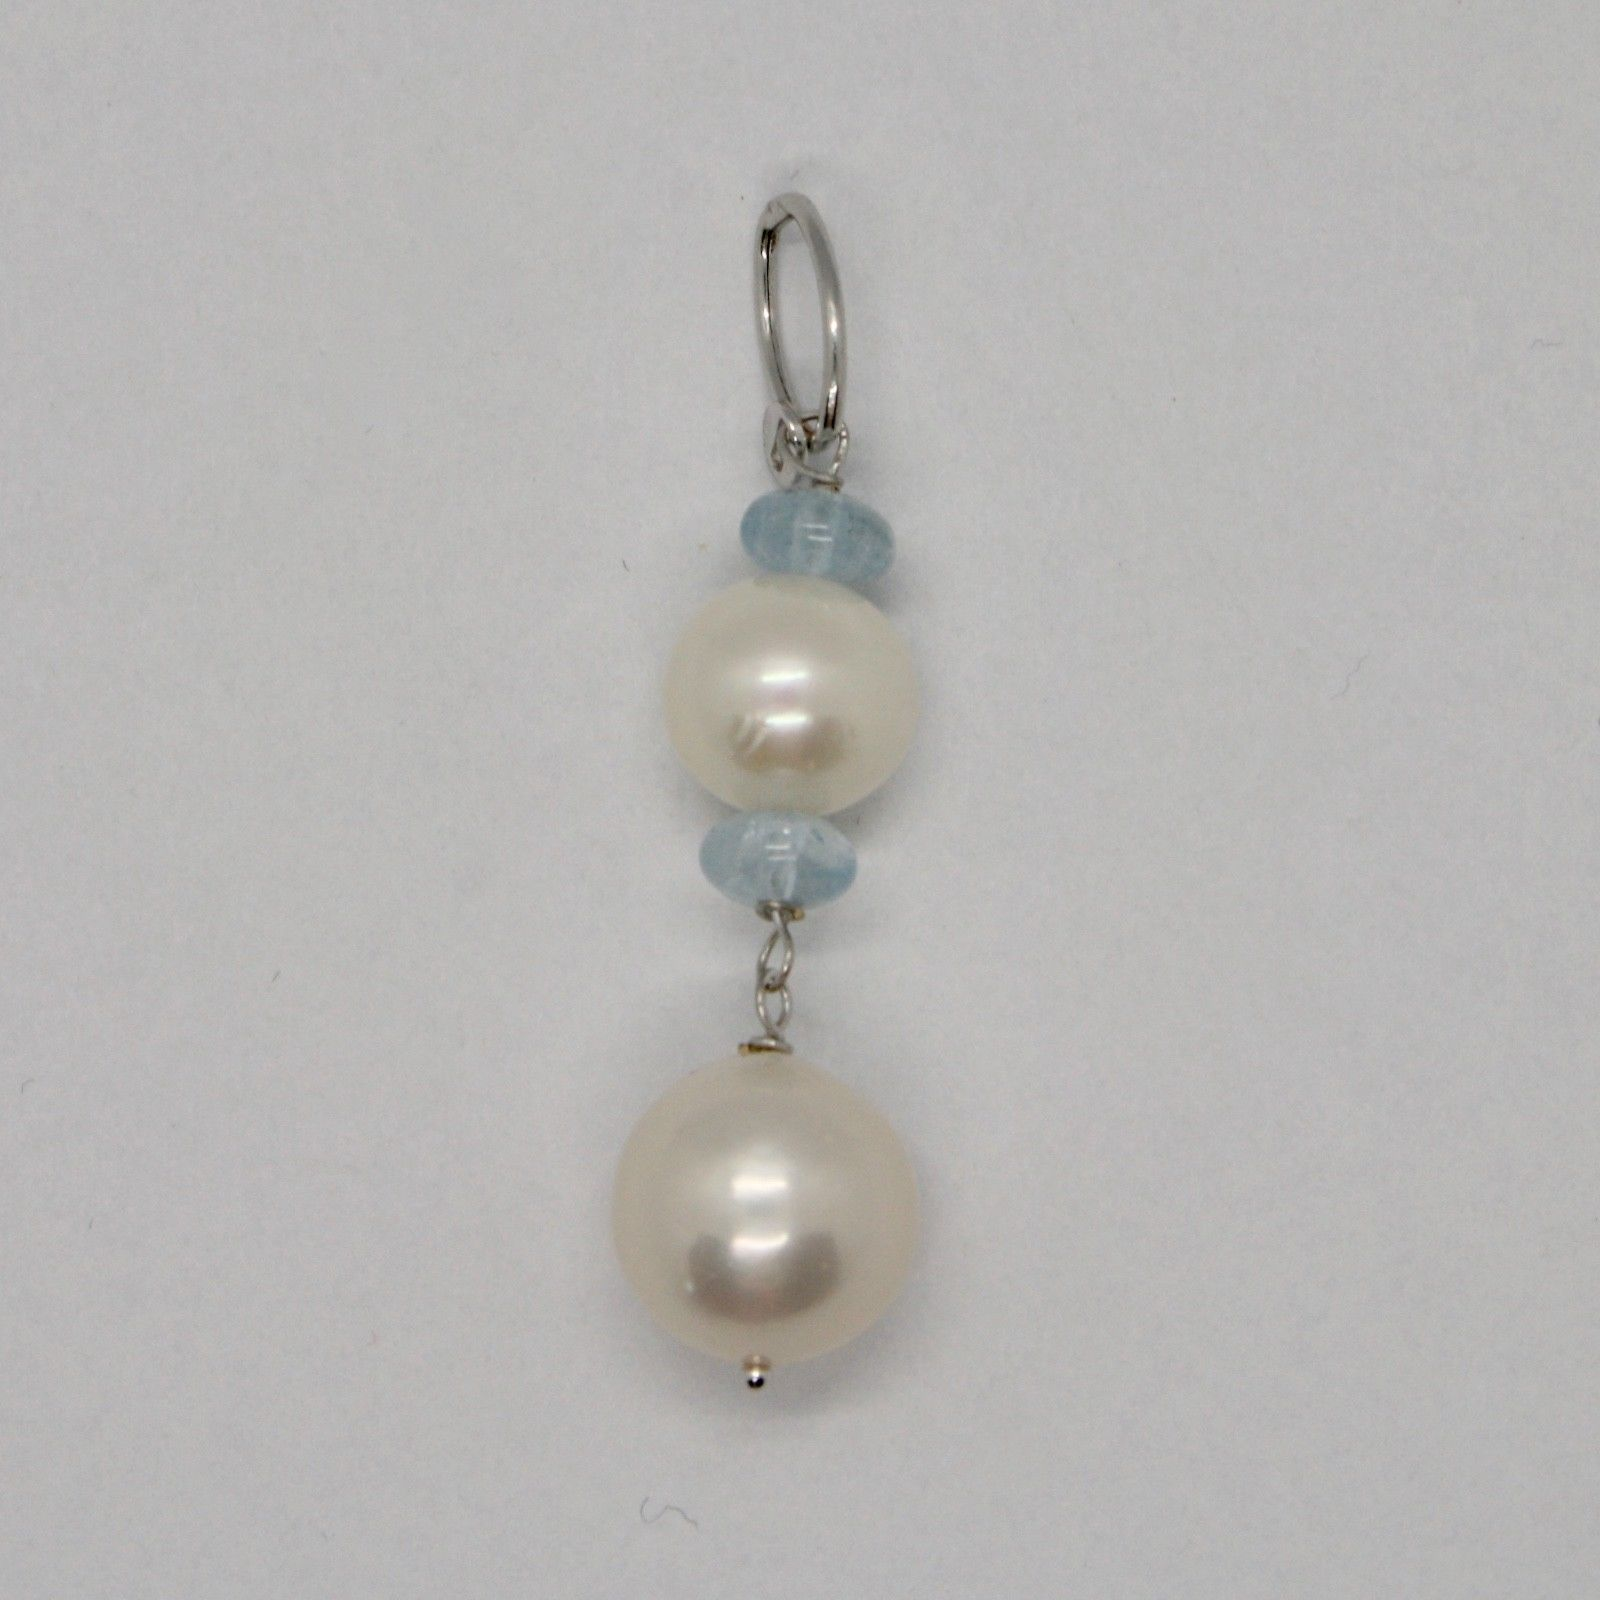 PENDANT WHITE GOLD 18KT 750 WITH WHITE PEARLS FRESH WATER AND AQUAMARINE